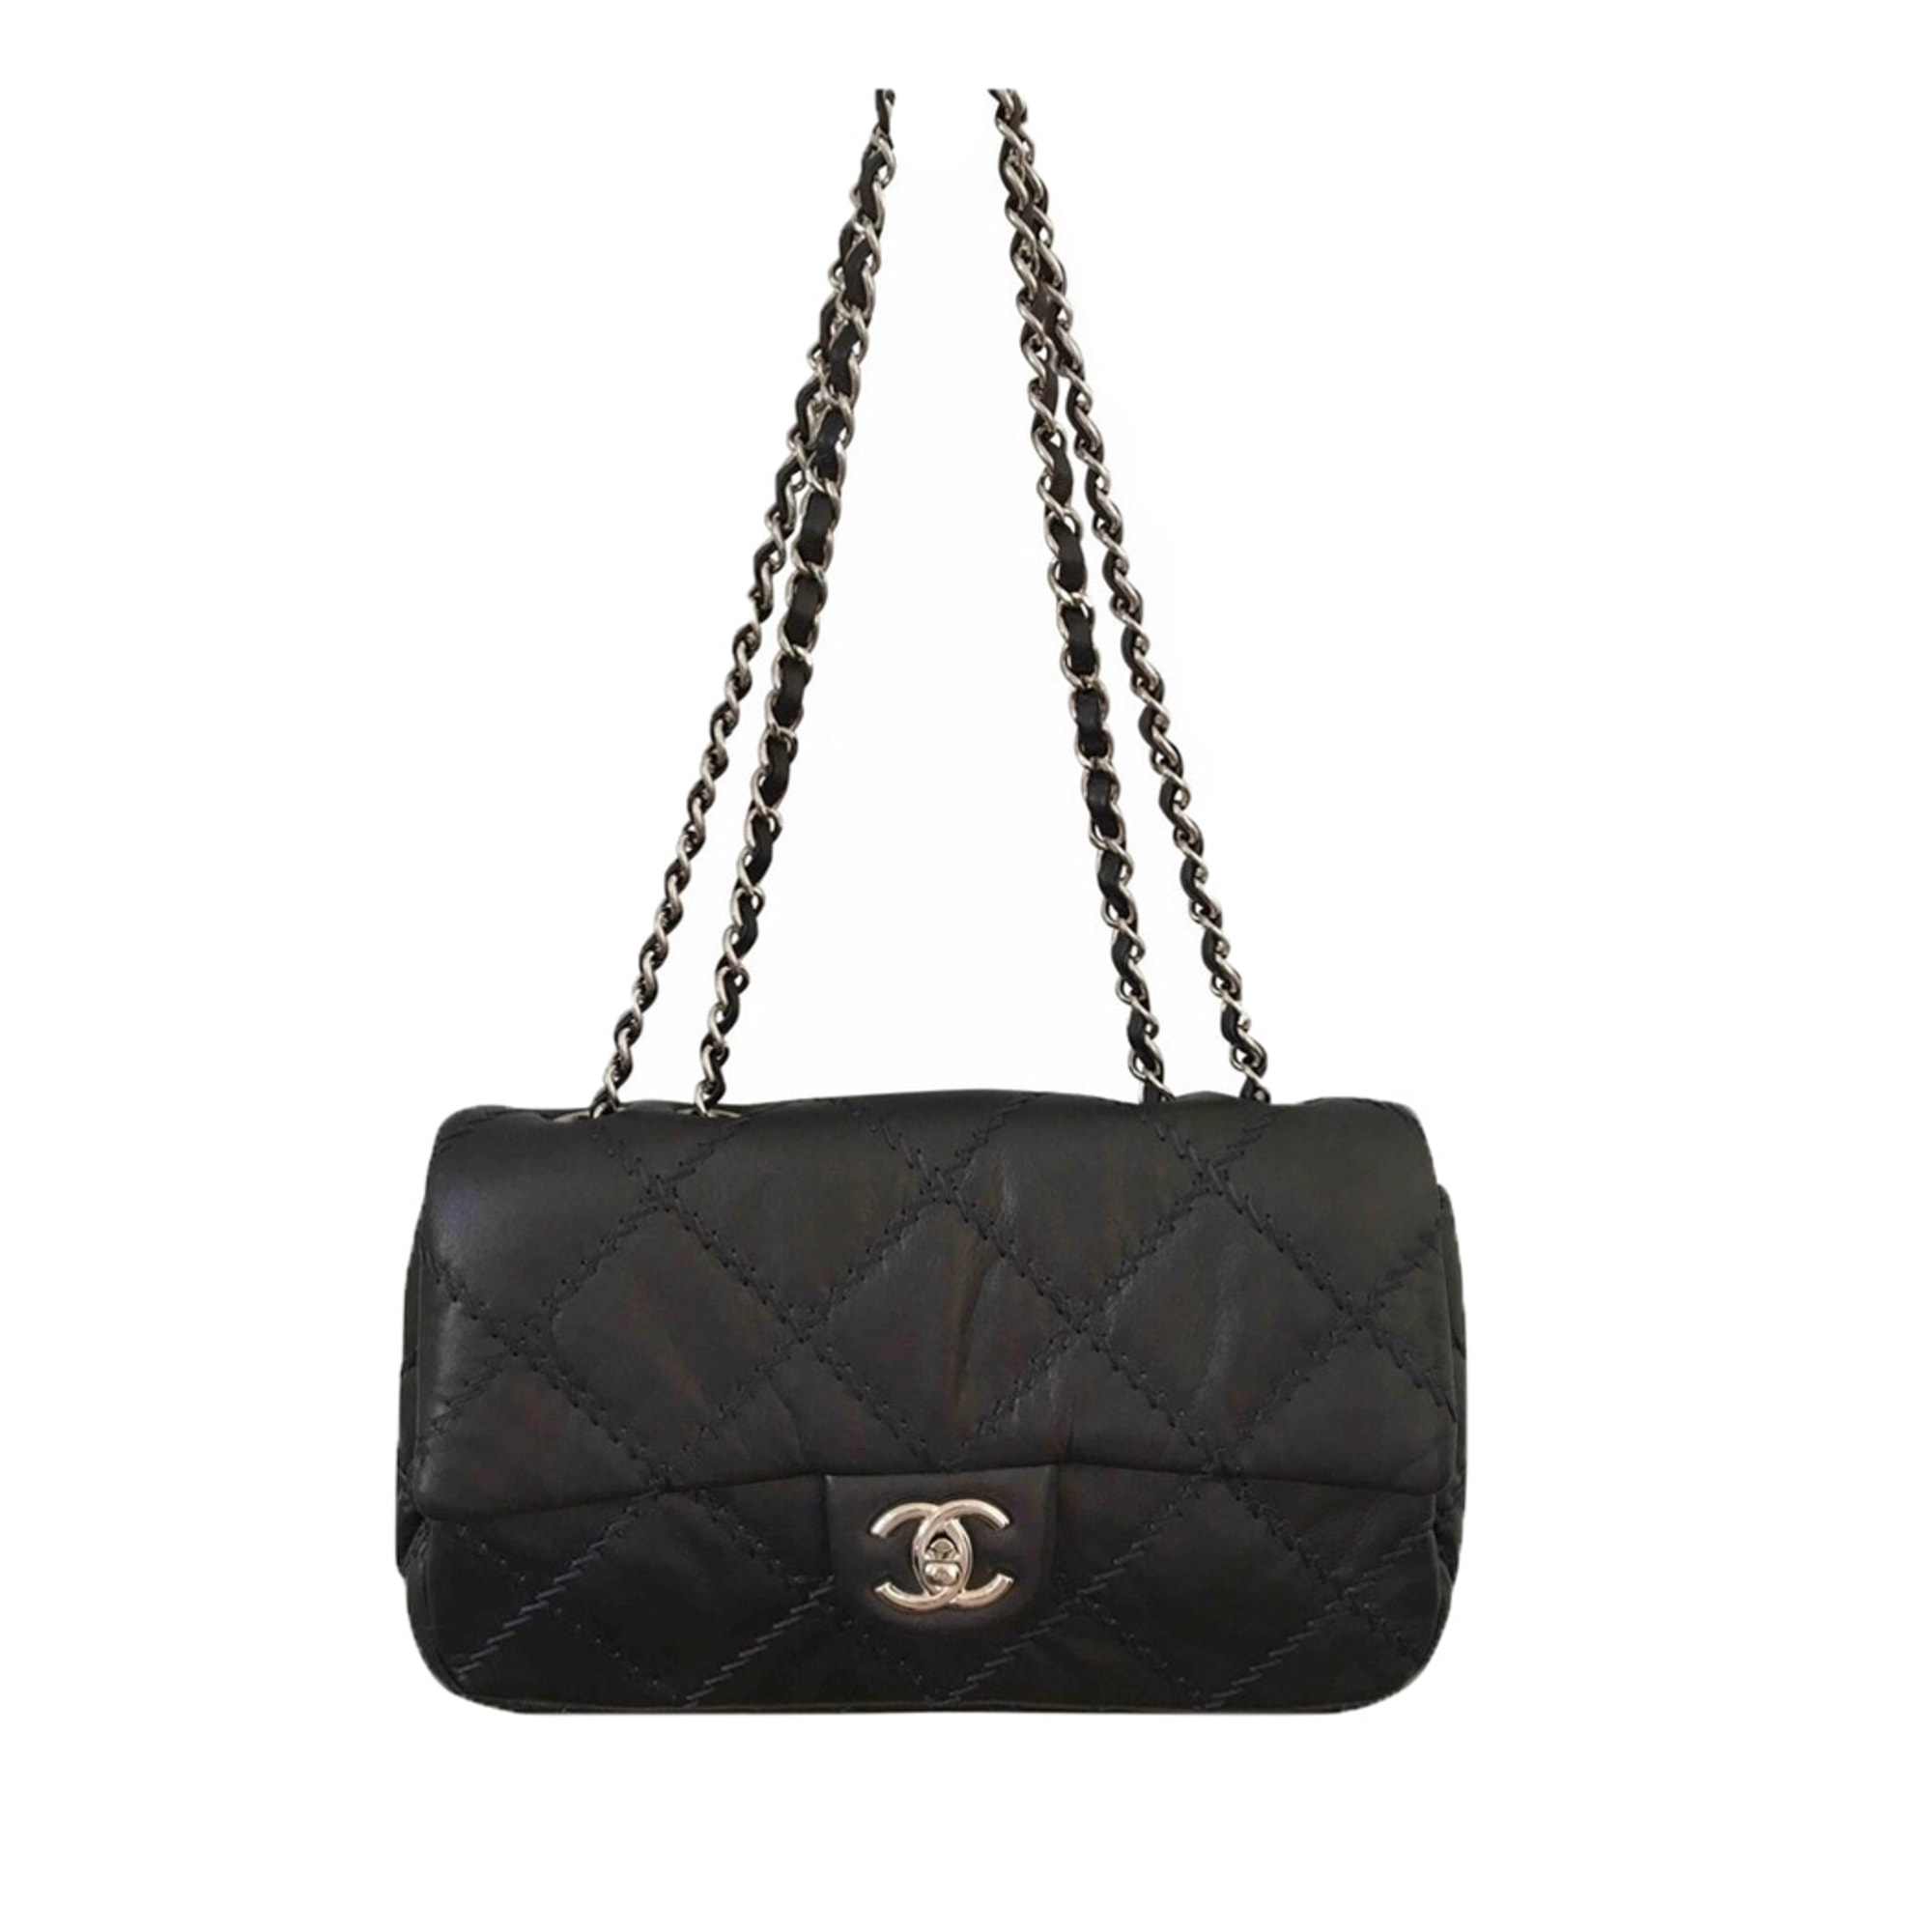 Leather Clutch CHANEL Timeless - Classique Gray, charcoal